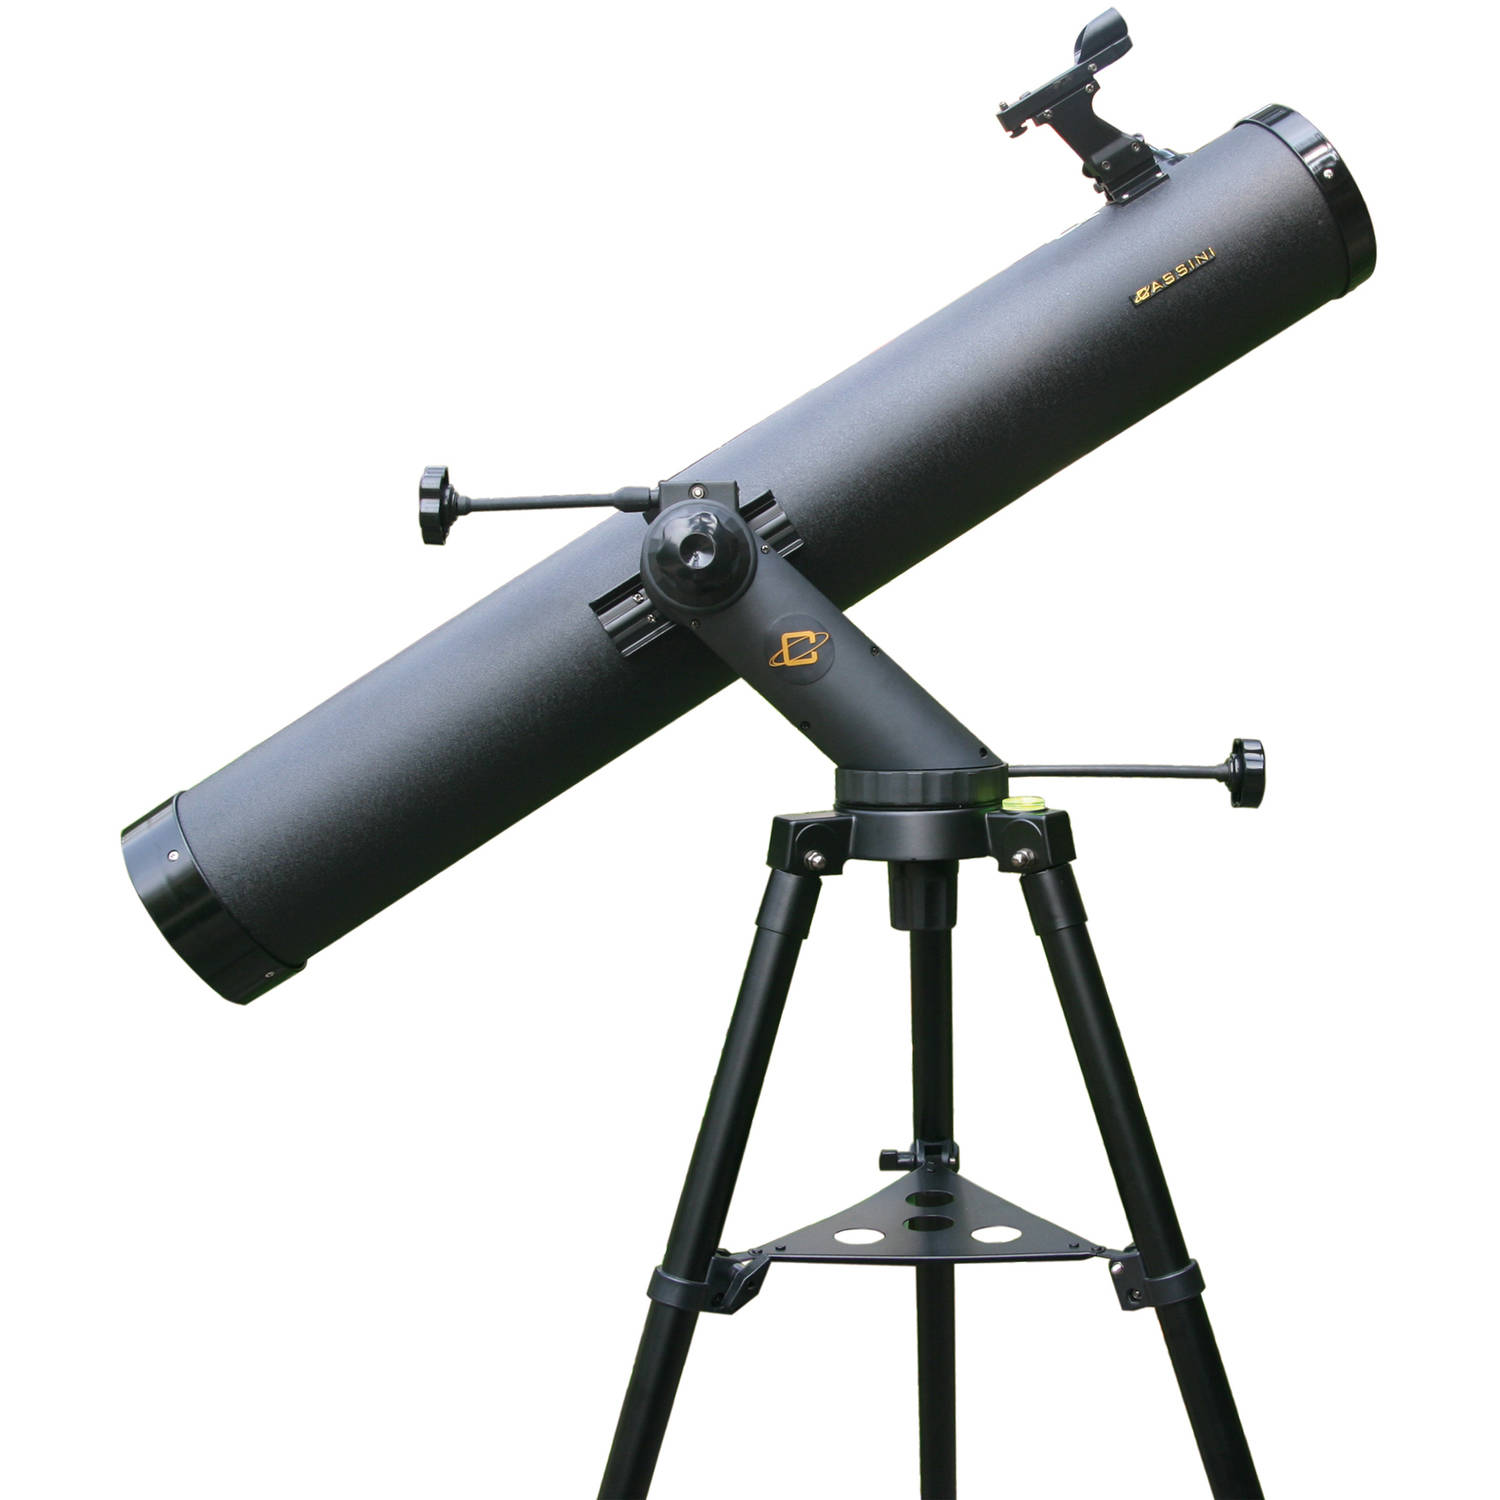 Cassini 1000mm x 120mm Tracker Series Astronomical Reflector Telescope with Tripod - Black, C-1000120TR